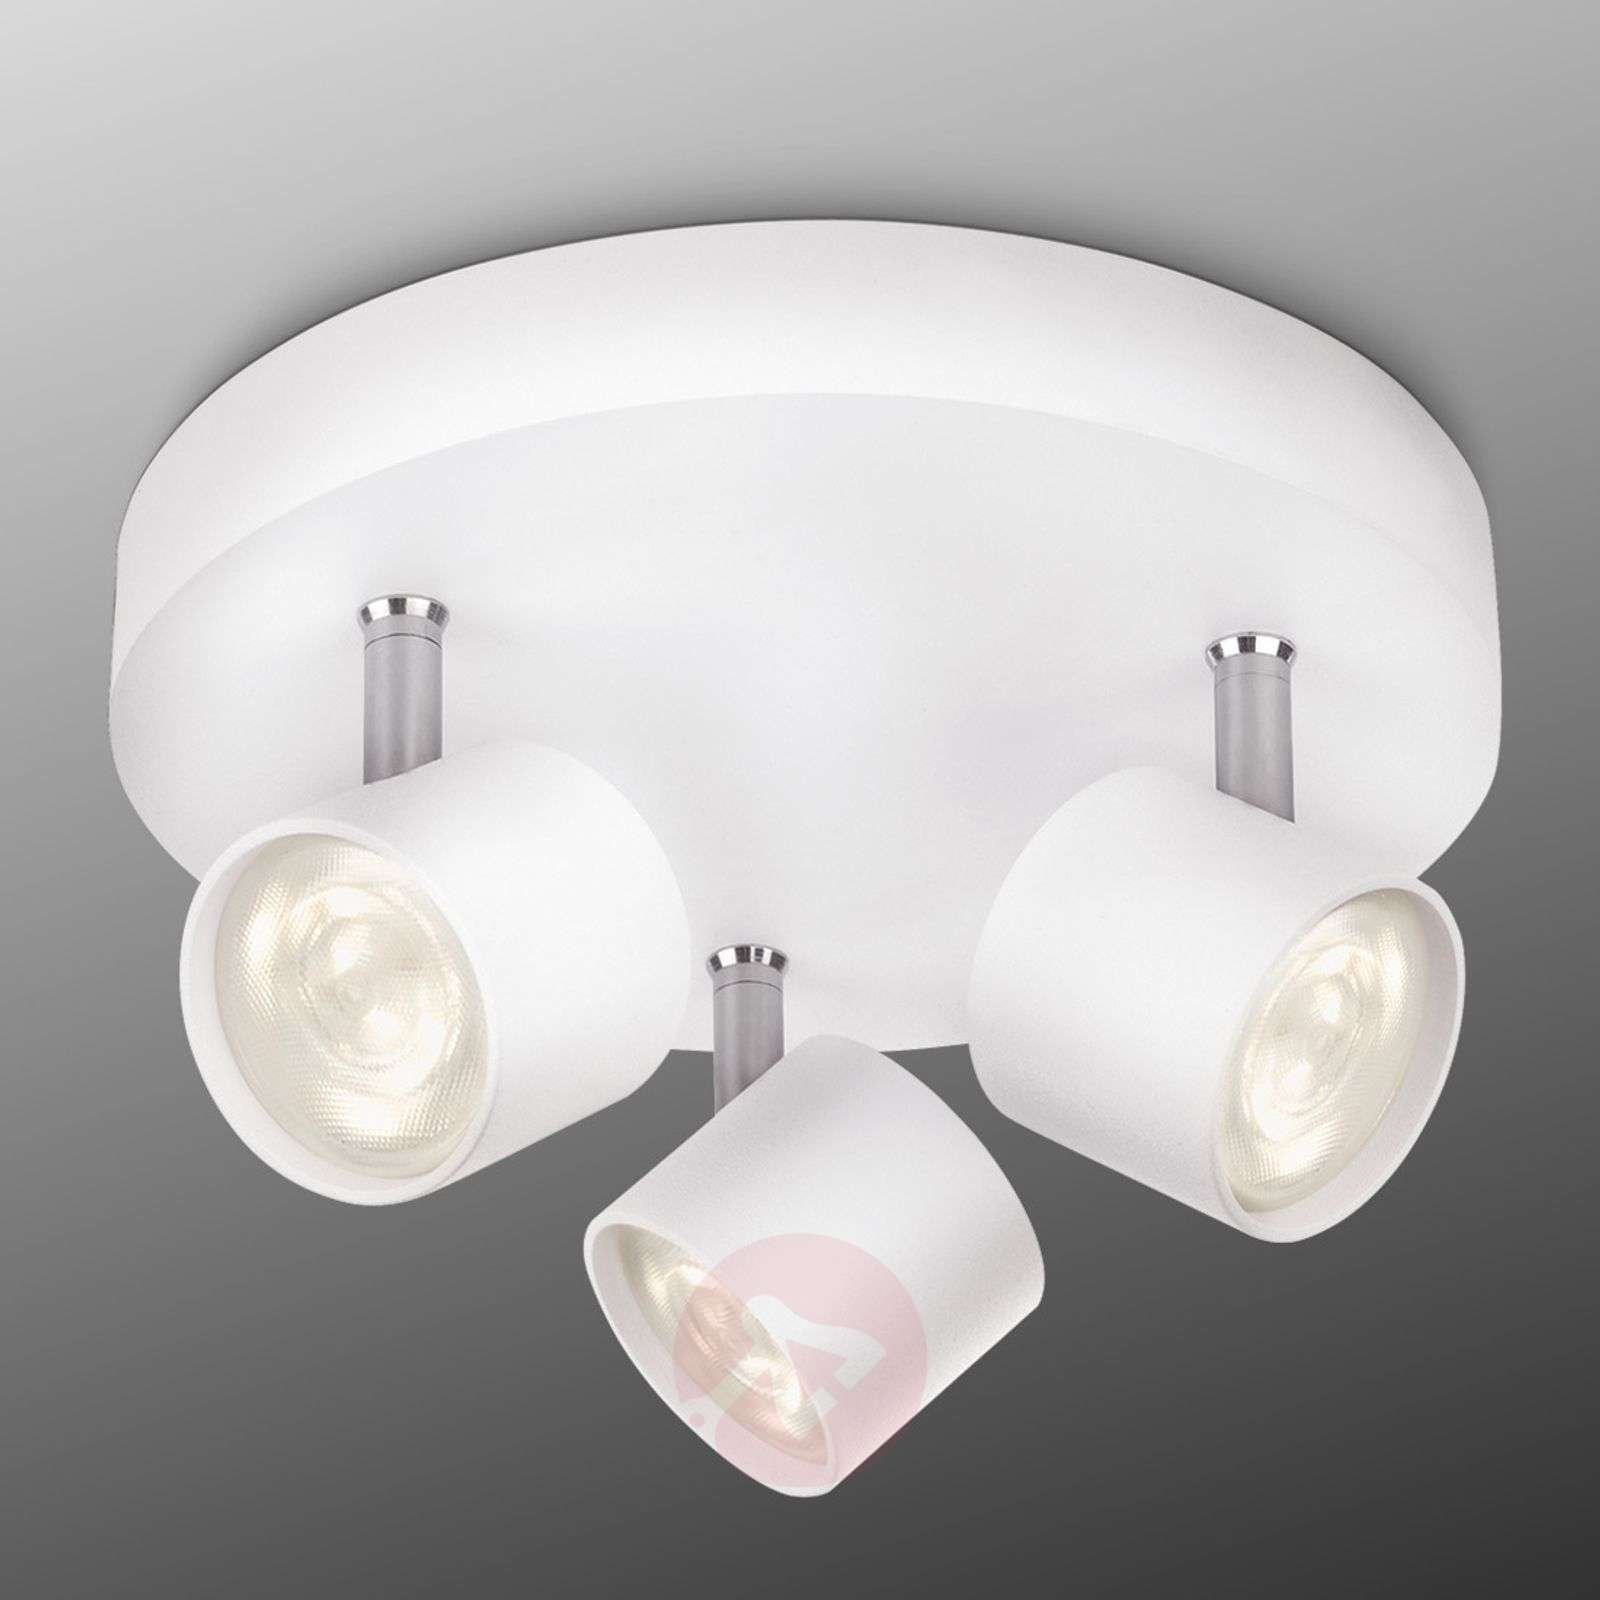 Star led ceiling light three bulbs white round lights star led ceiling light three bulbs white round 7531425 01 aloadofball Image collections